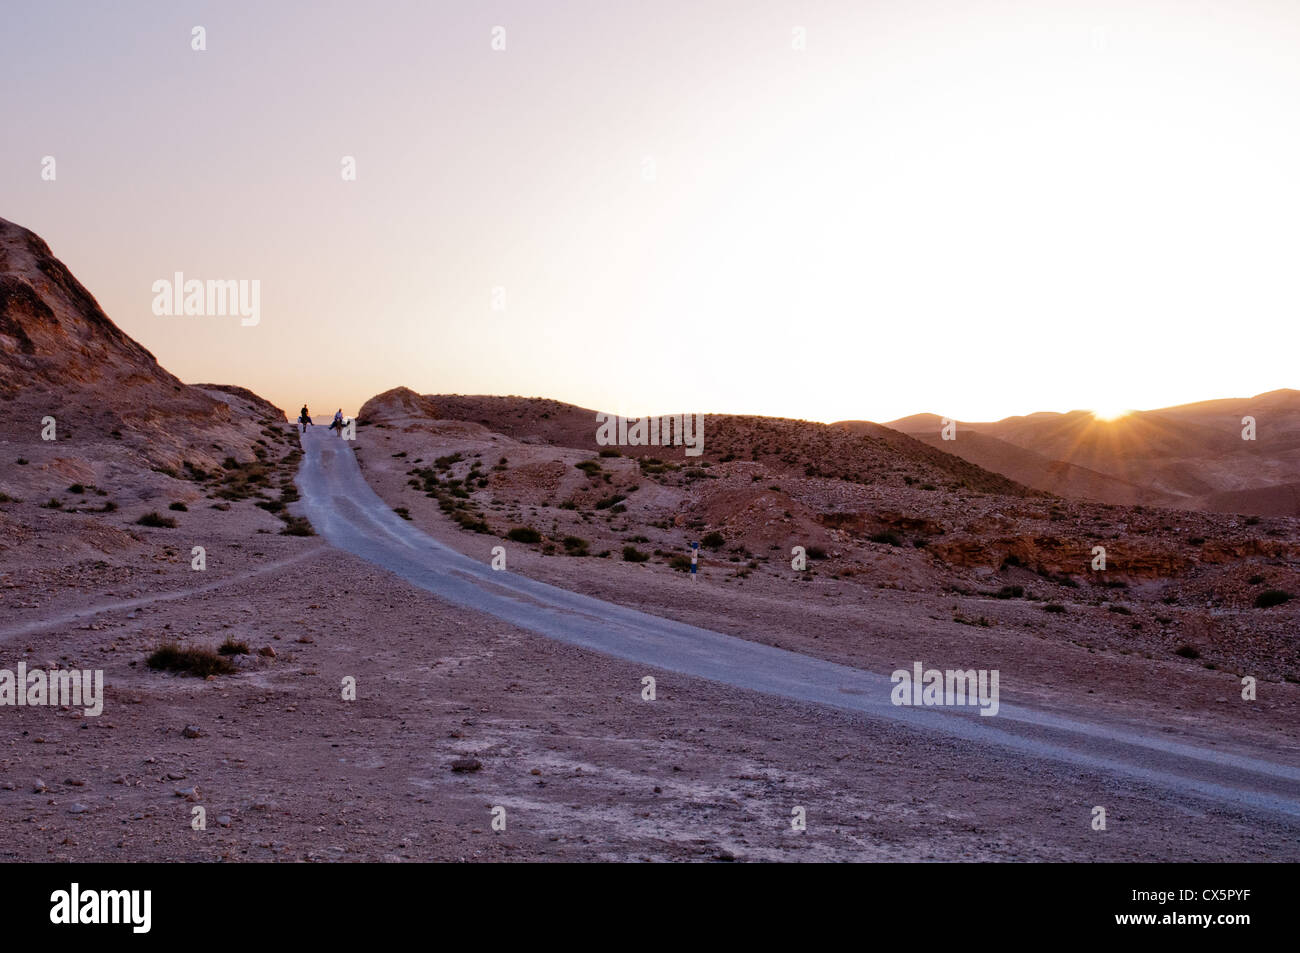 A view near Jericho in the West Bank of Palestine - Stock Image